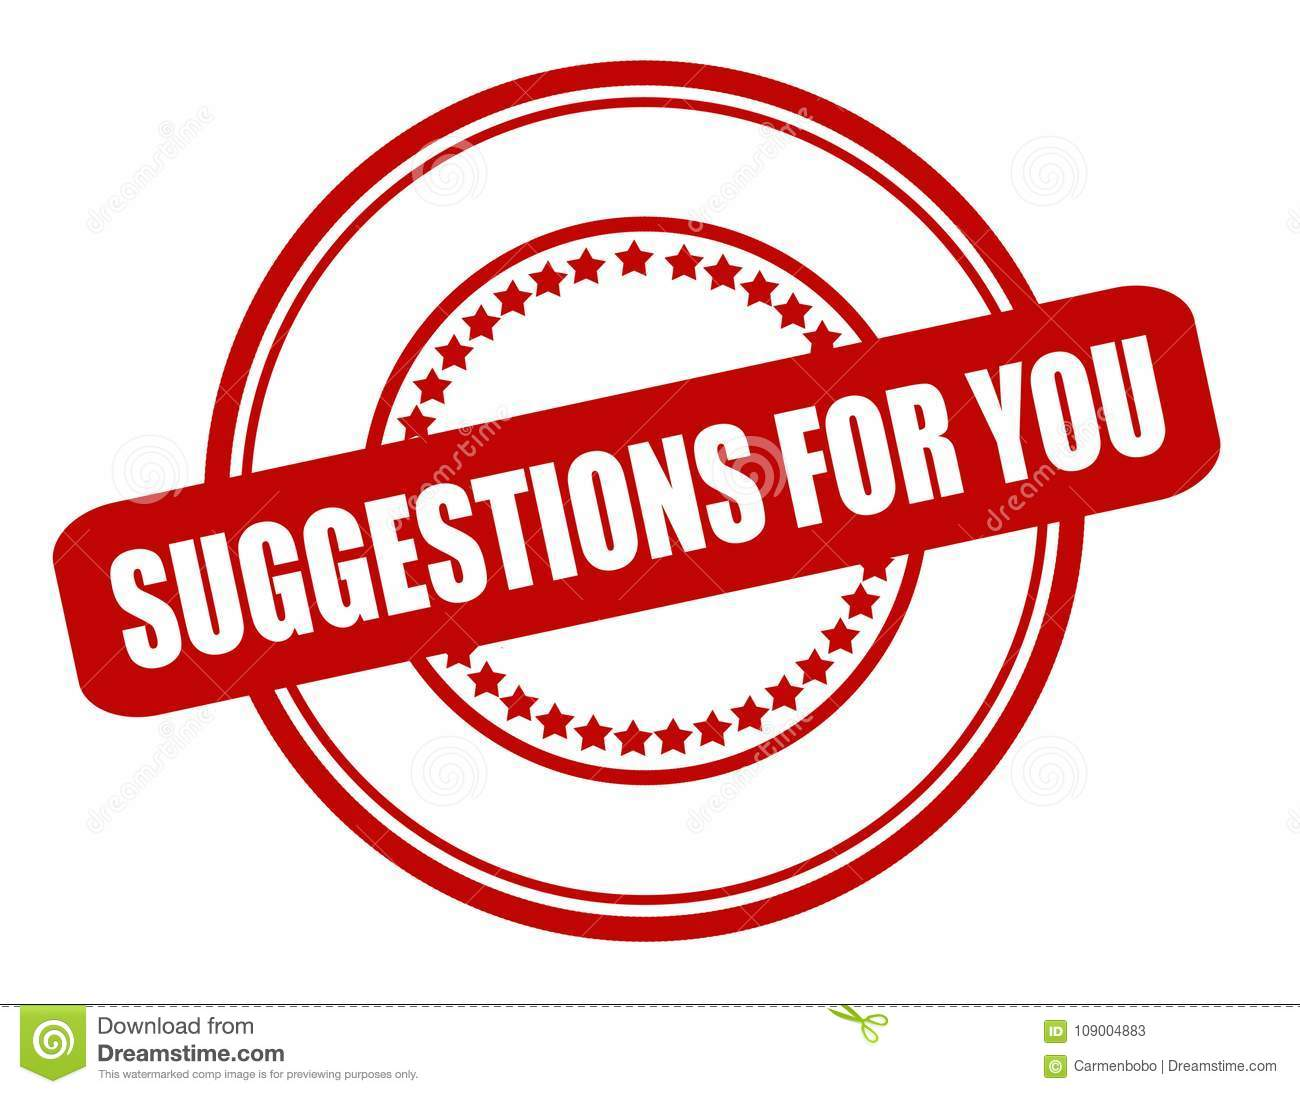 Suggestions for you